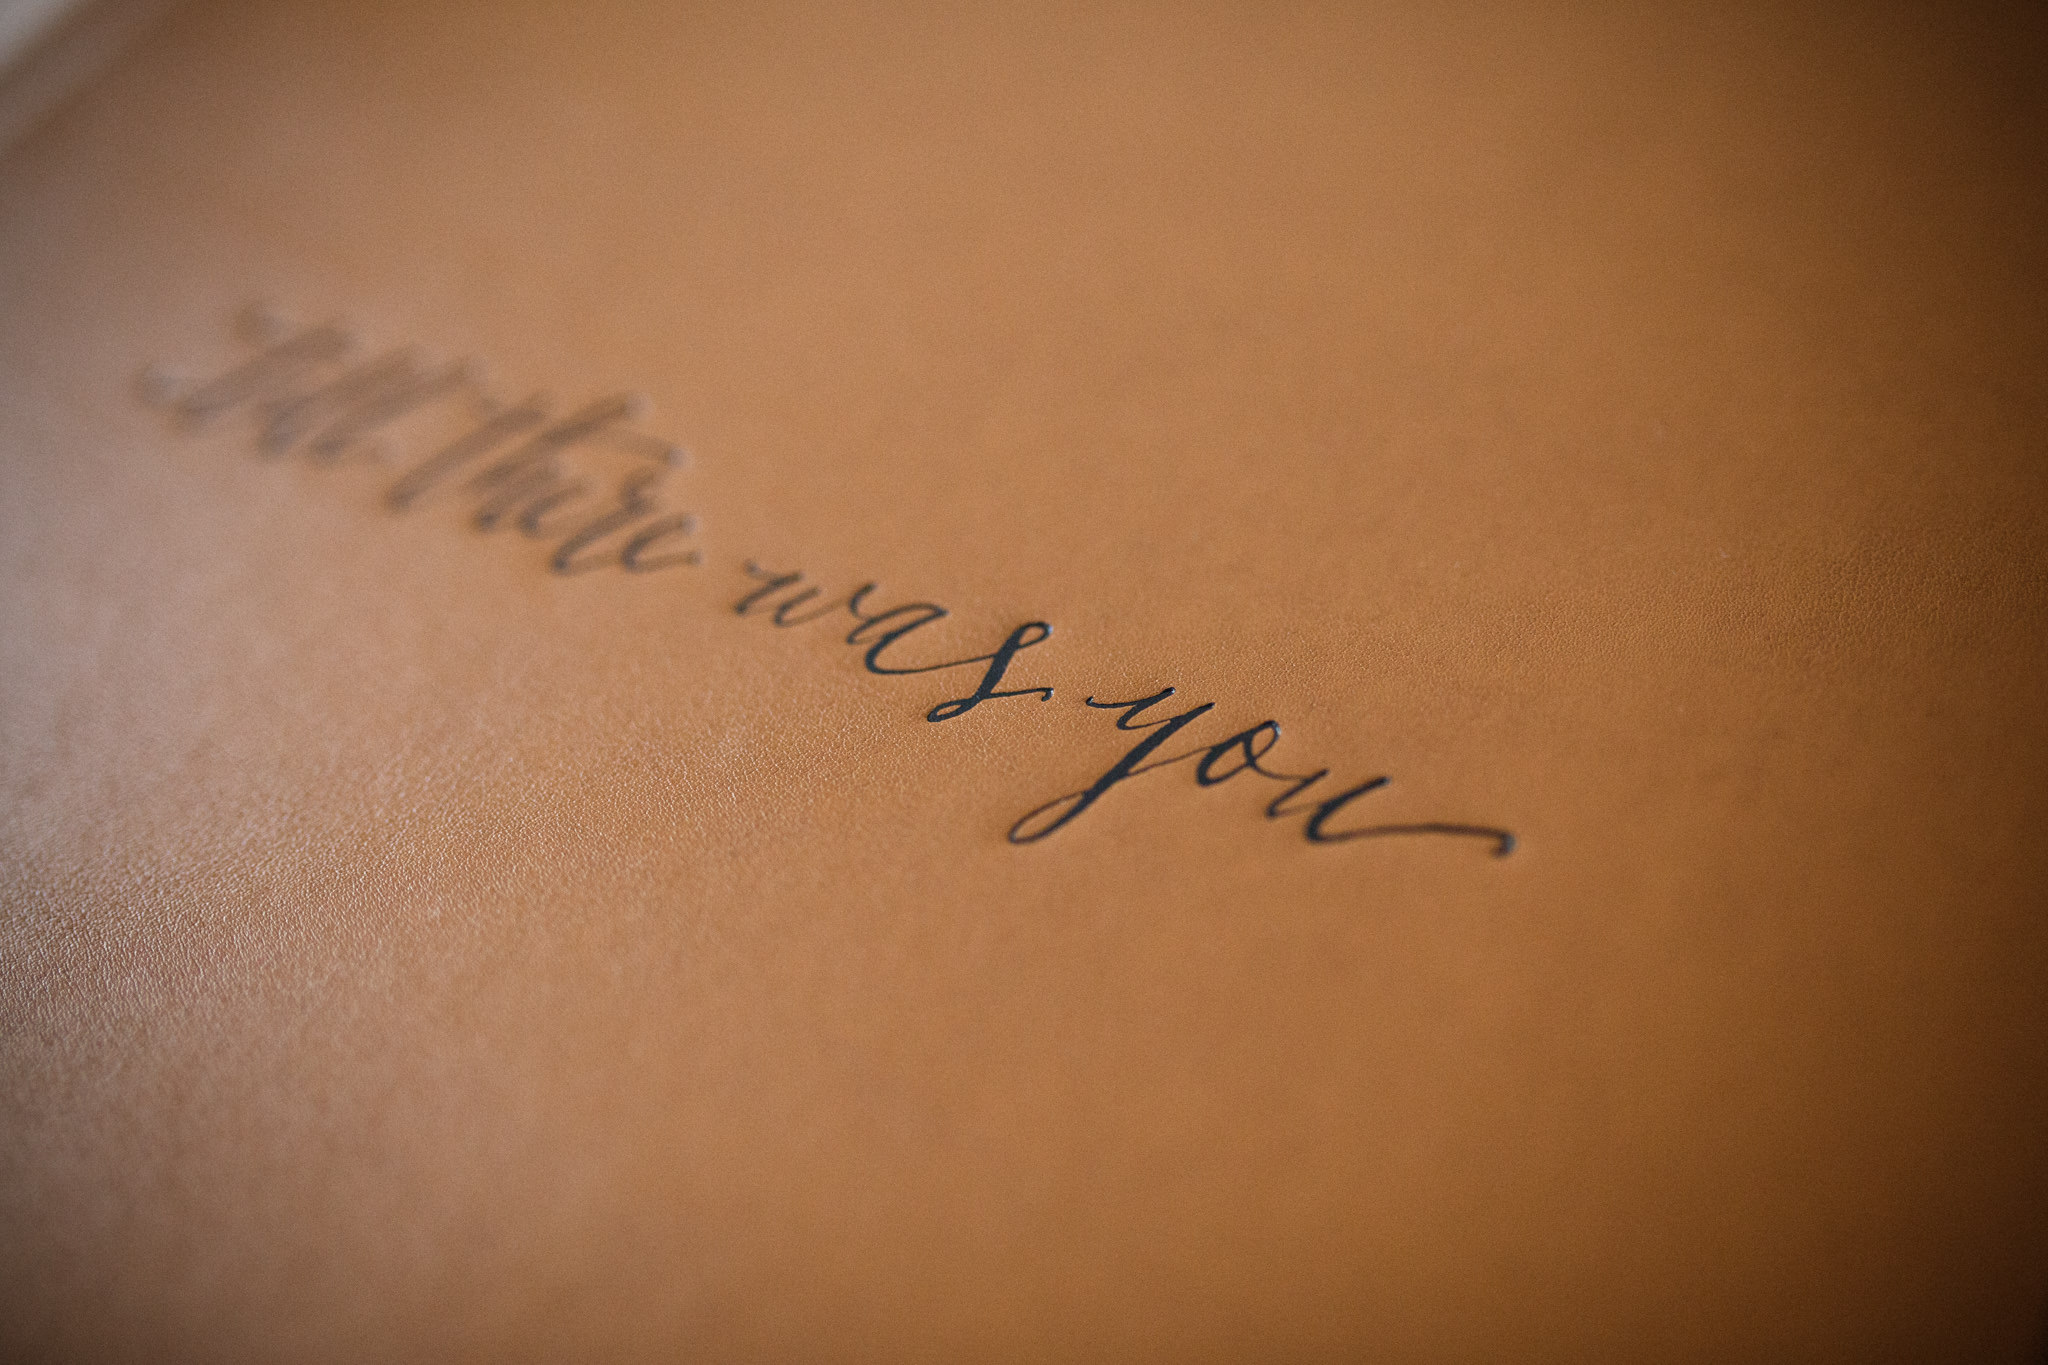 Name embossing on photo album cover in leather.